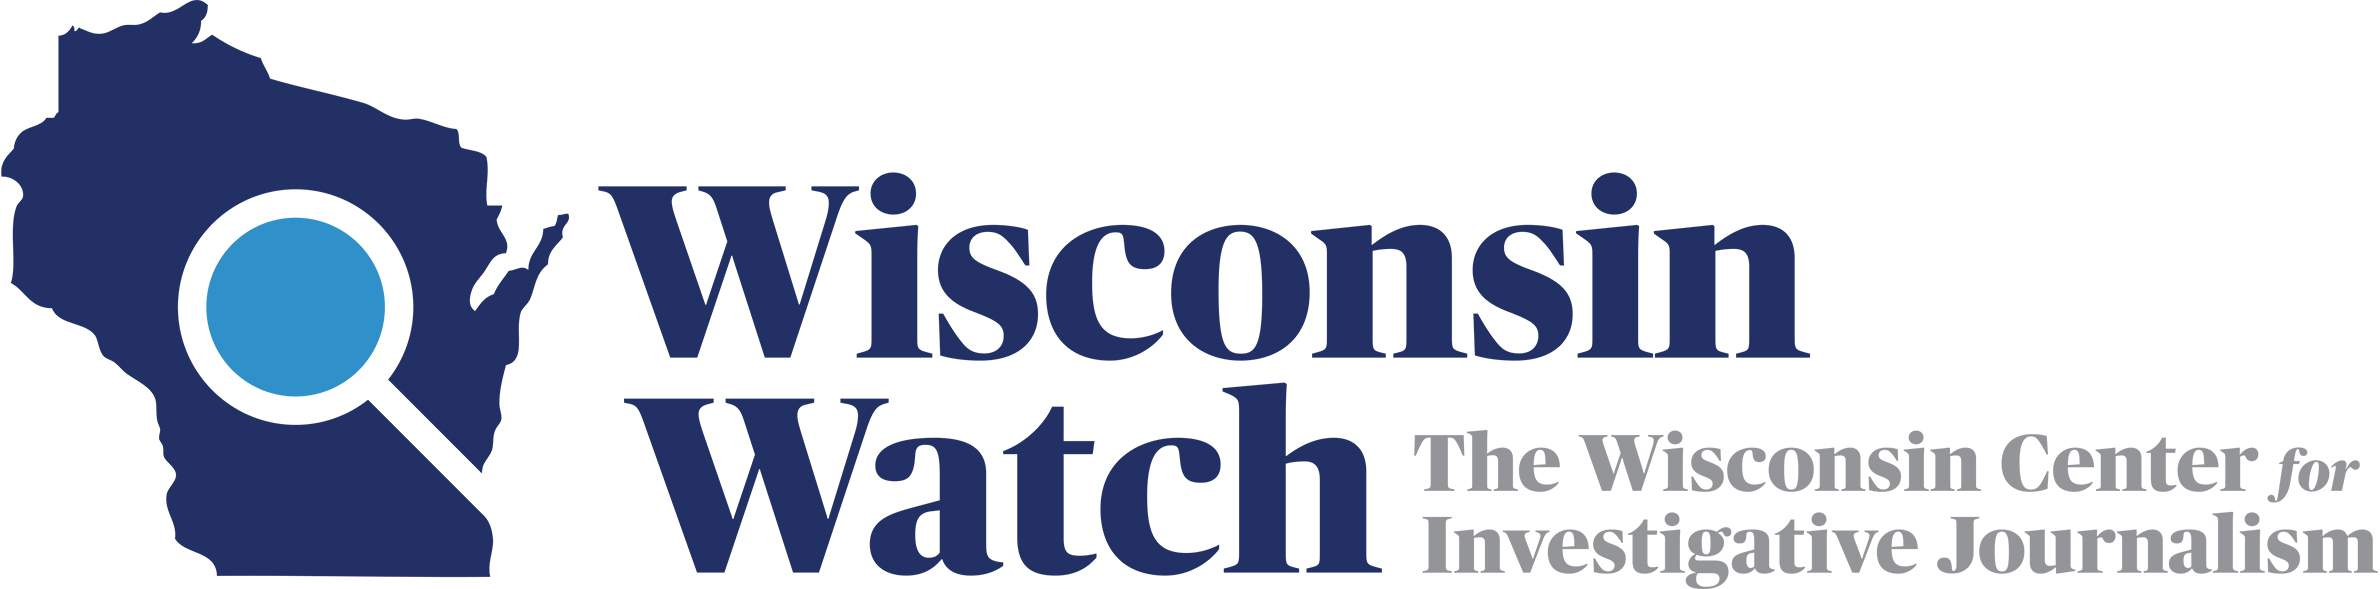 Logo of Wisconsin Watch: The Wisconsin Center for Investigative Journalism